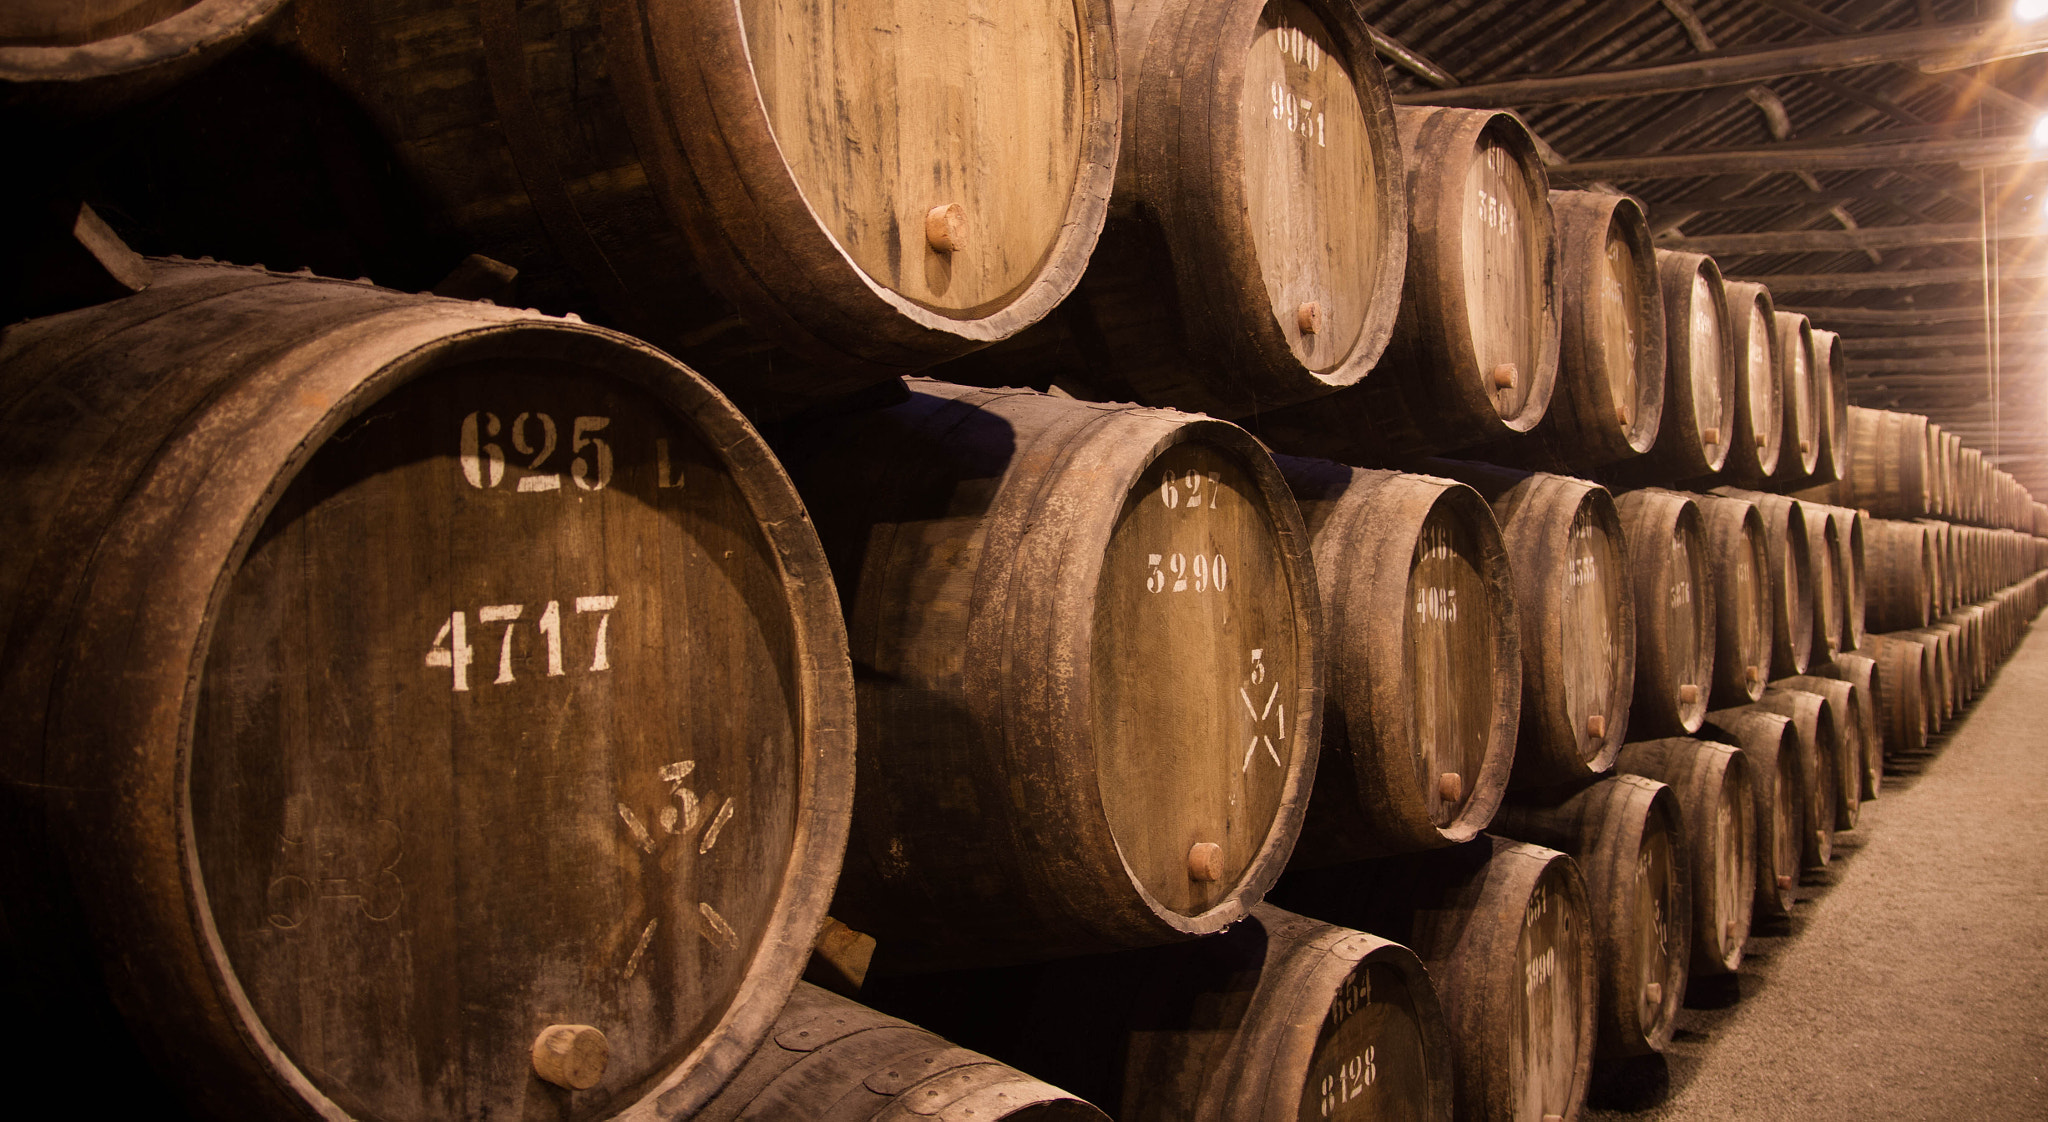 Photograph Taylors Gaia Cellar - Tawny Port Aging by Ryan Opaz on 500px